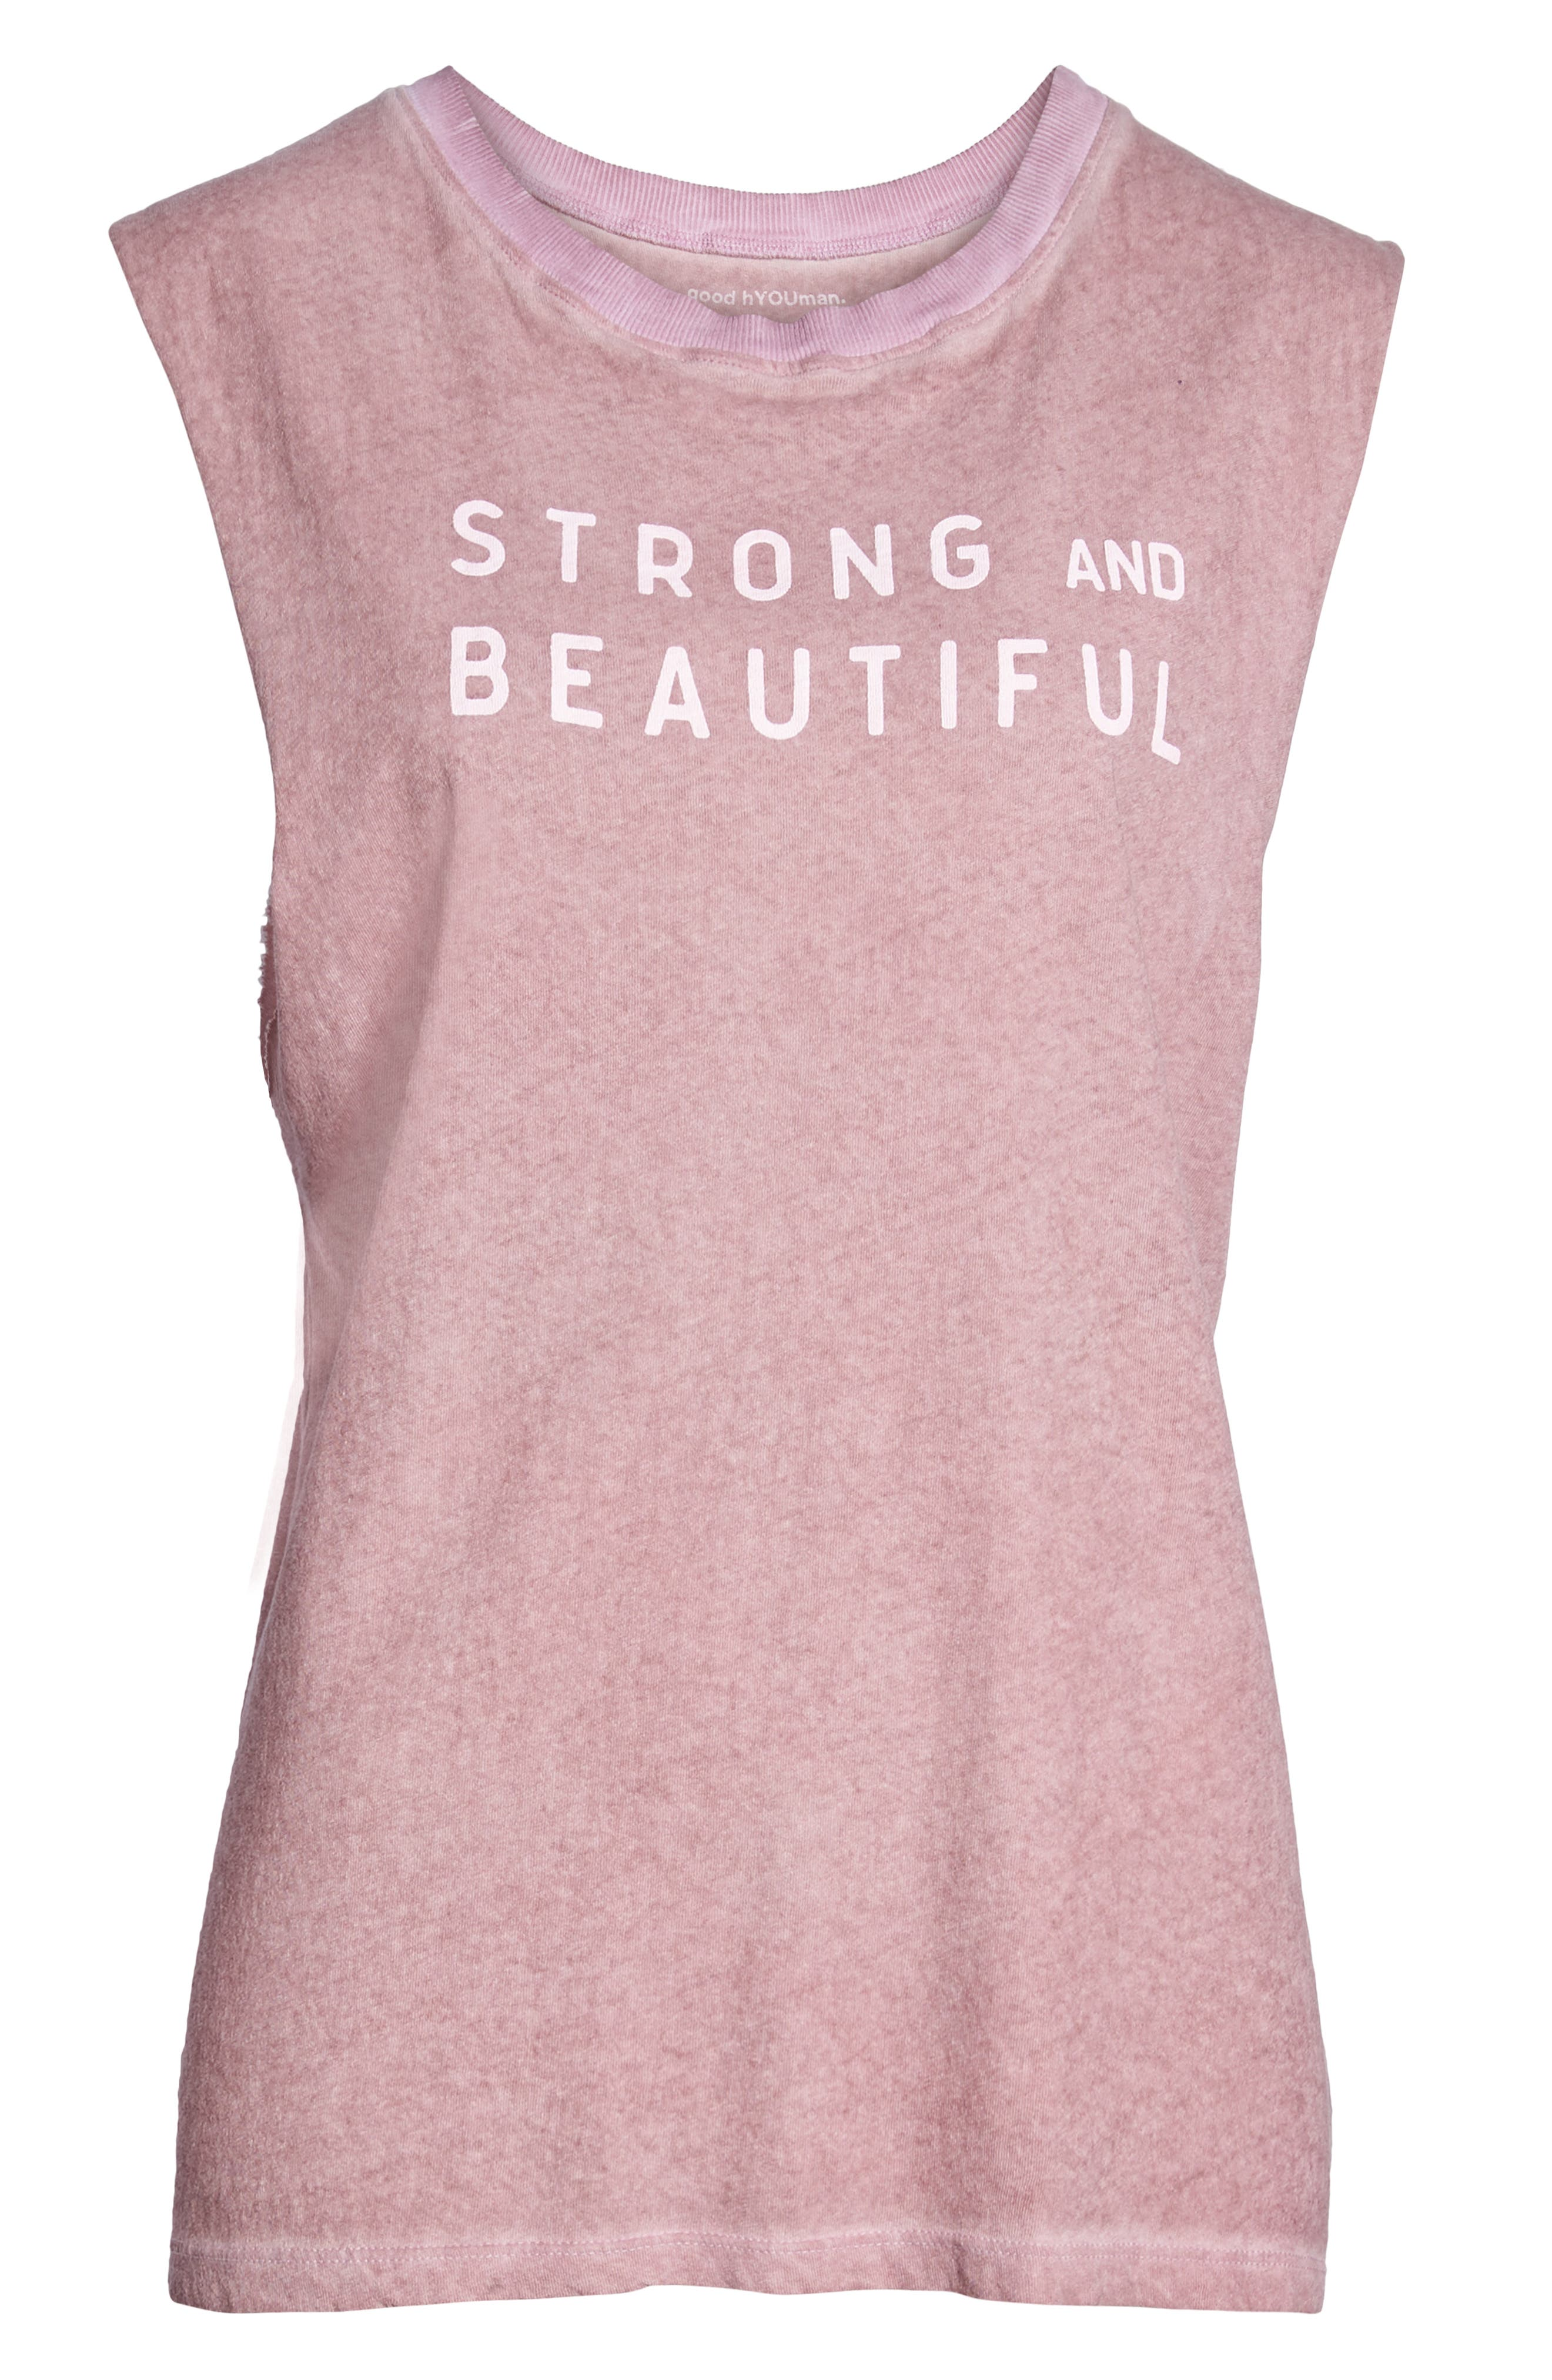 Strong and Beautiful Muscle Tank,                             Alternate thumbnail 7, color,                             ANTIQUE DUSTY ROSE